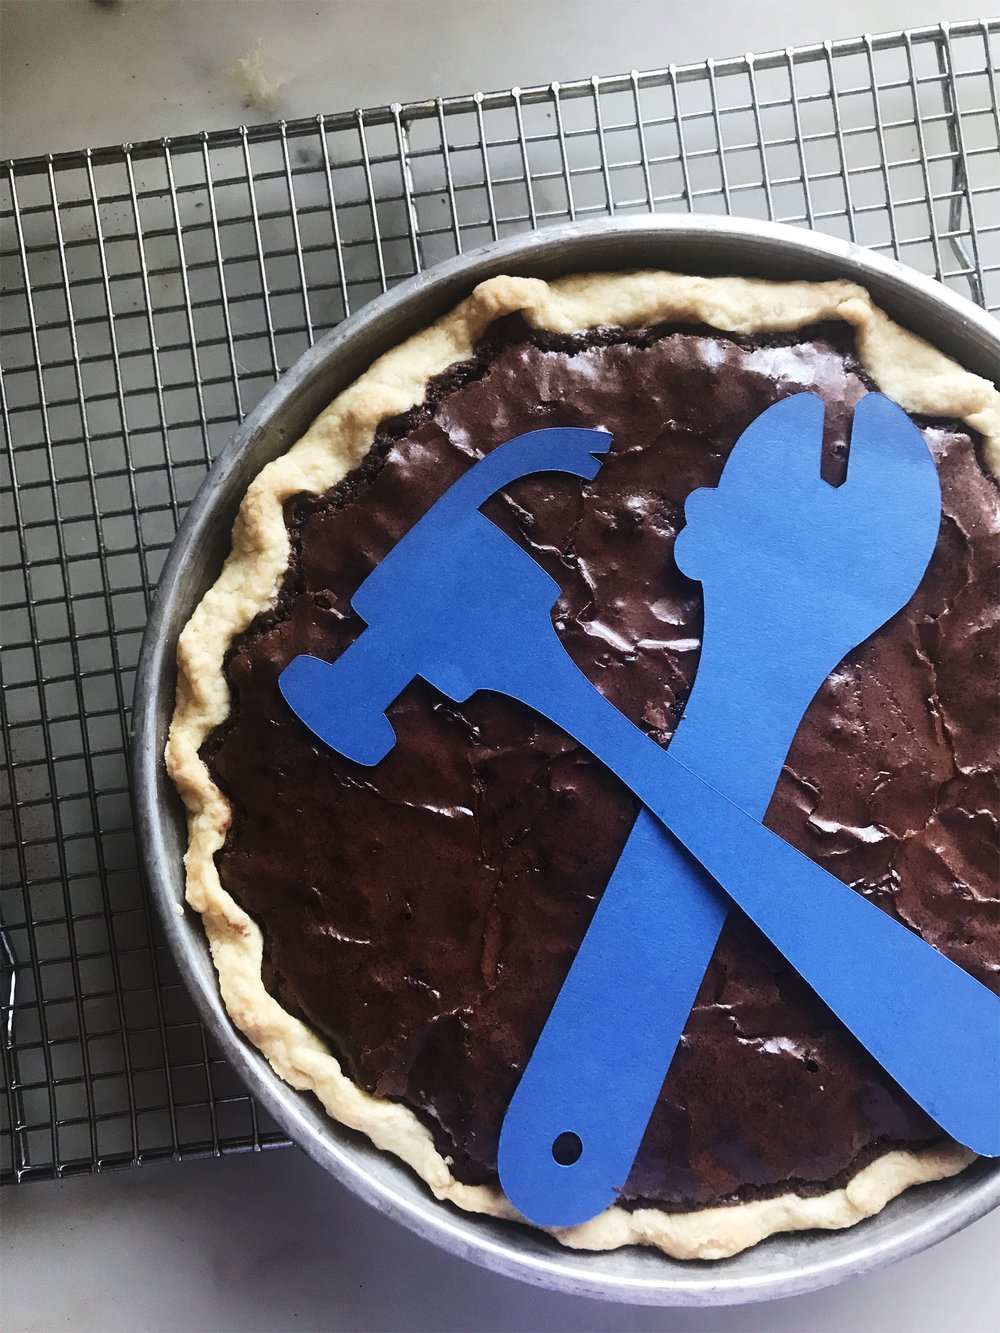 To assemble a brownie pie, line a 9 inch tin with your favorite crust. I use this one from Williams Sonoma. Fill with brownie batter and bake in a 350 degree pre-heated oven for 50 minutes. I used my Cricut Explore Air 2 to make Labor Day themed stencils. Top with powdered sugar, and serve.